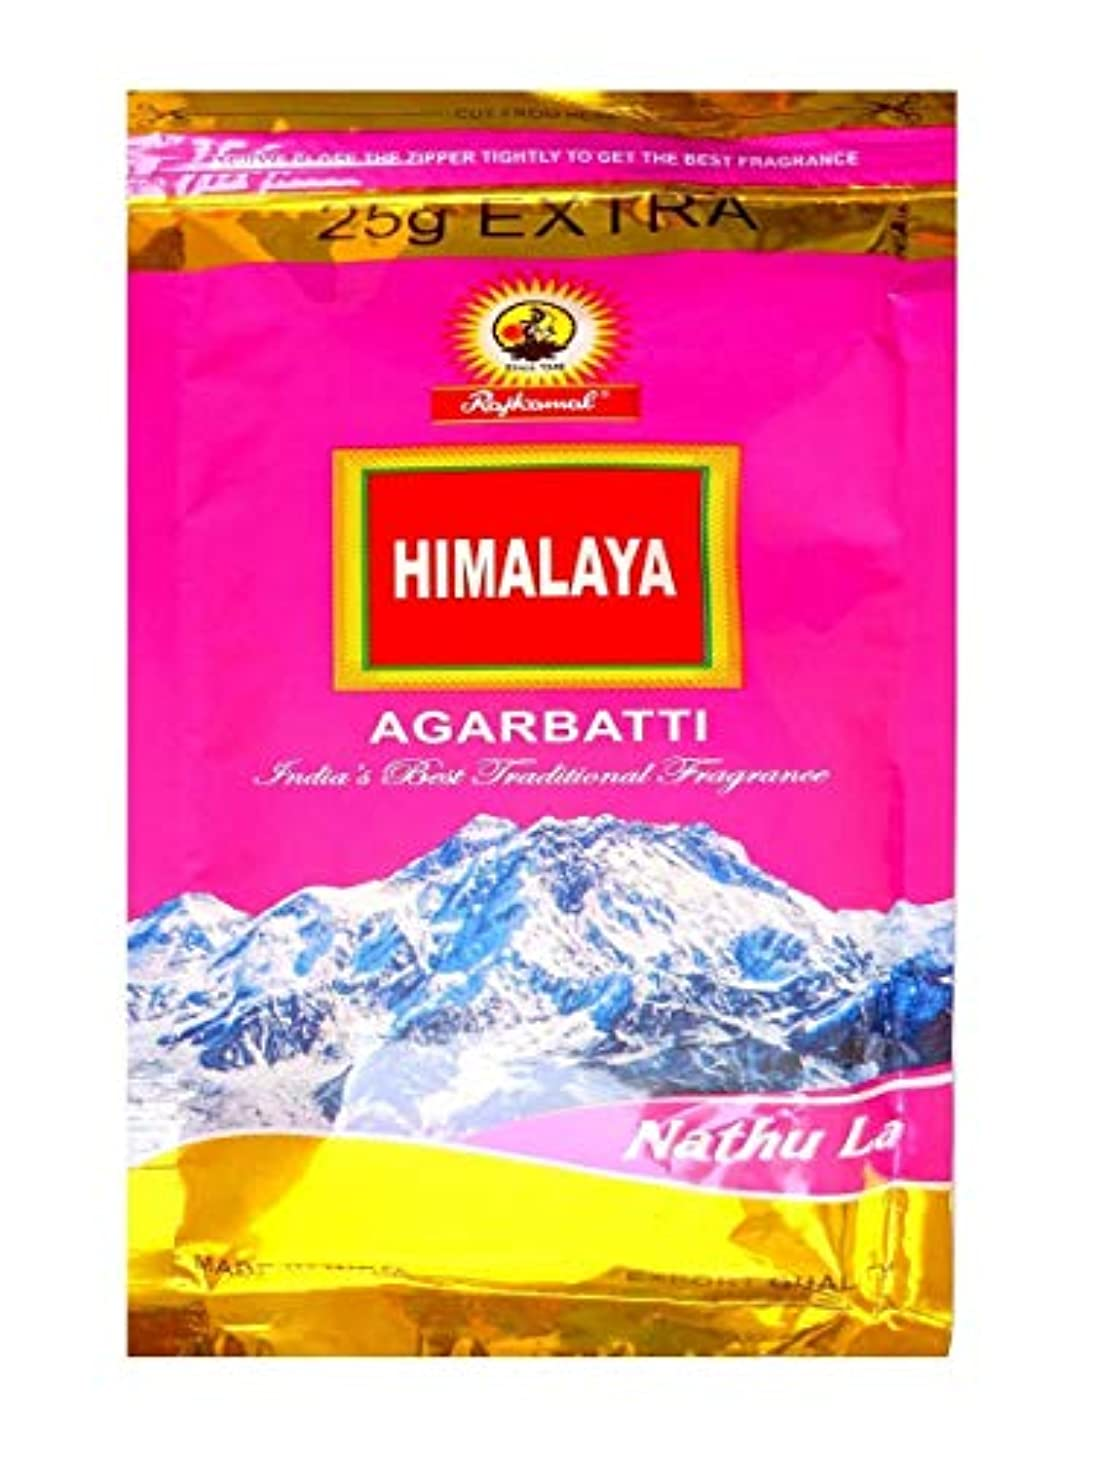 ストレス割れ目錆びGift Of Forest Himalaya Nathu La Agarbatti Pack of 450 gm